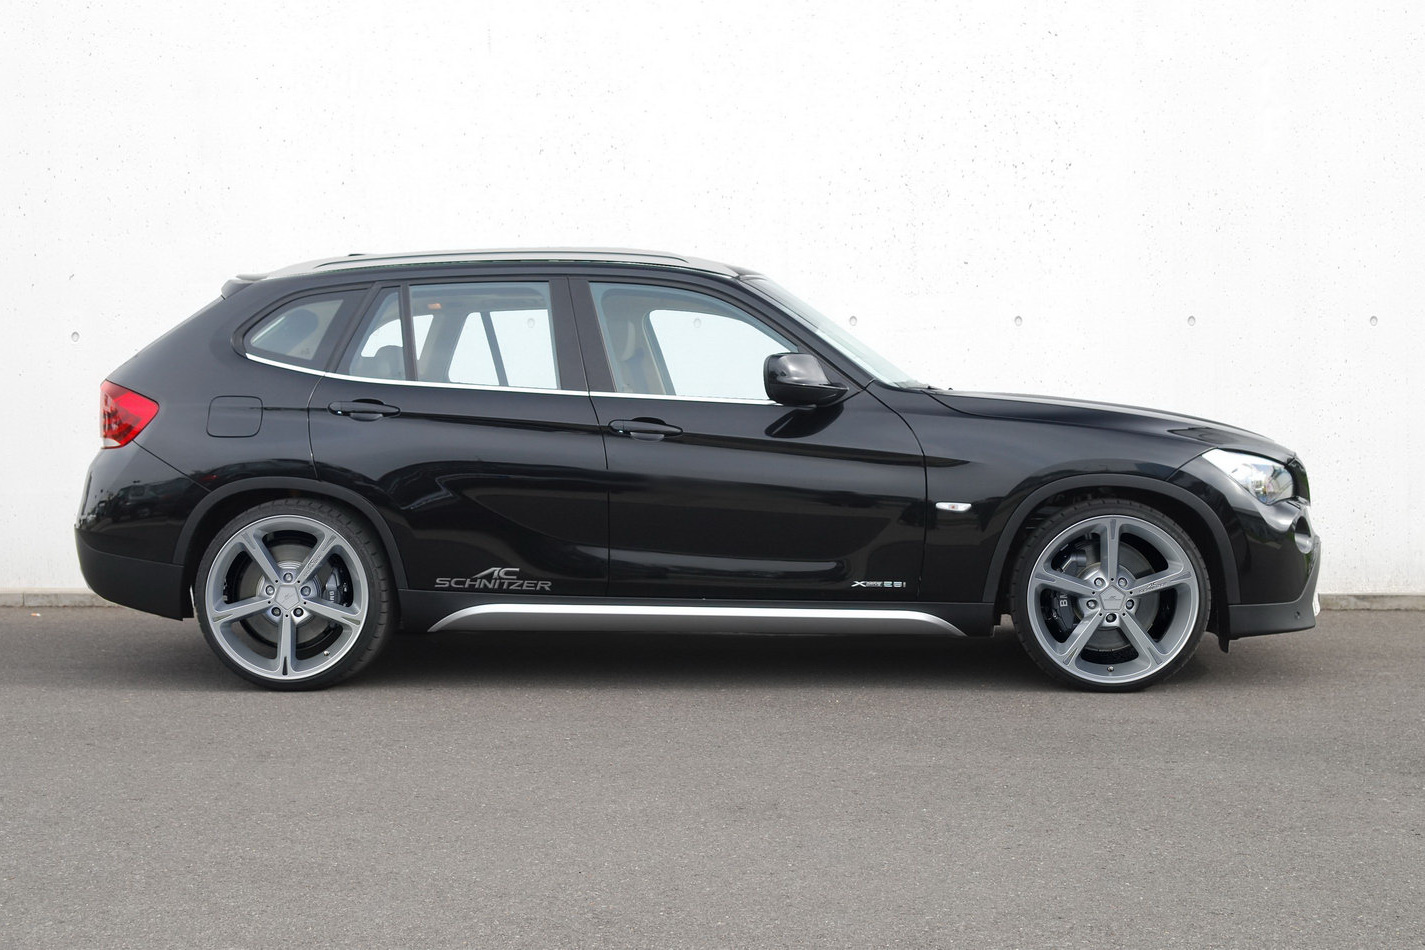 Wallpaper Bmw X1 Wallpaper